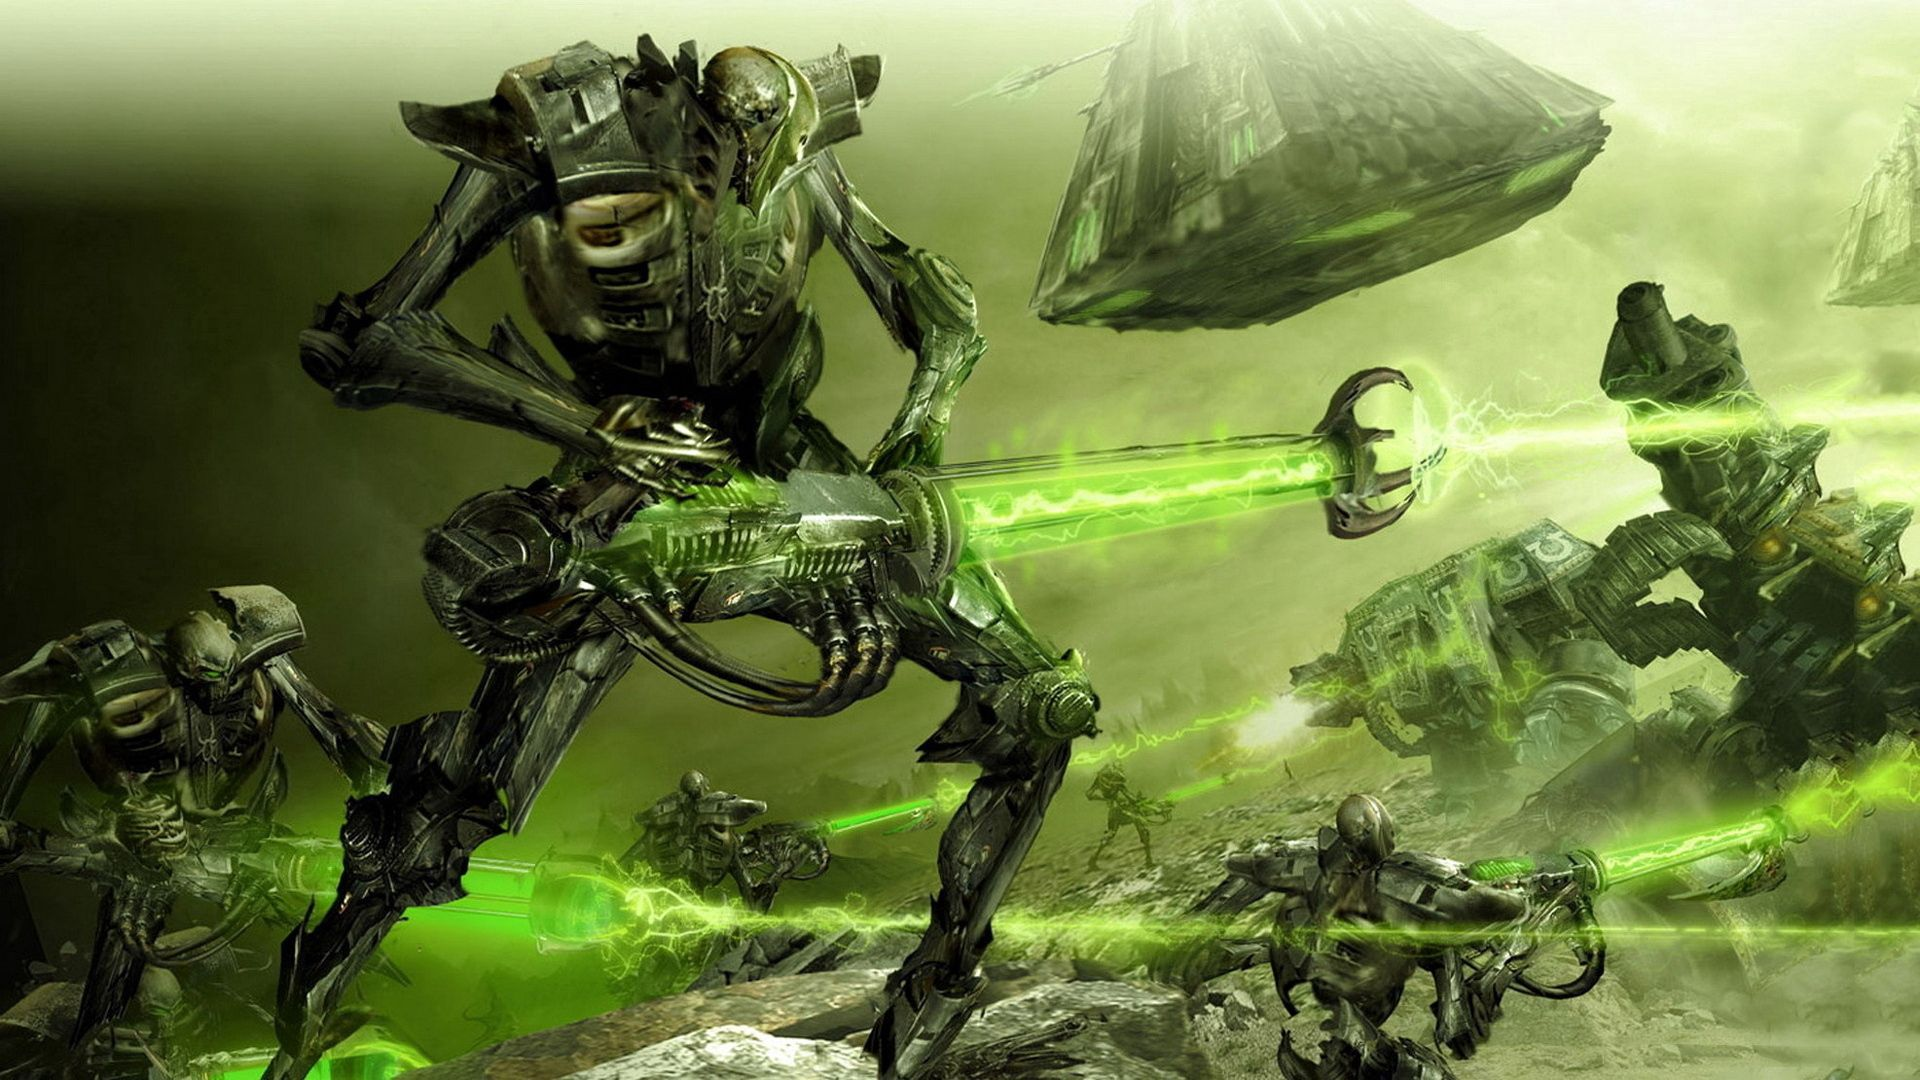 63127 Screensavers and Wallpapers Robots for phone. Download Fantasy, Creatures, Weapon, Laser, Battle, Robots pictures for free